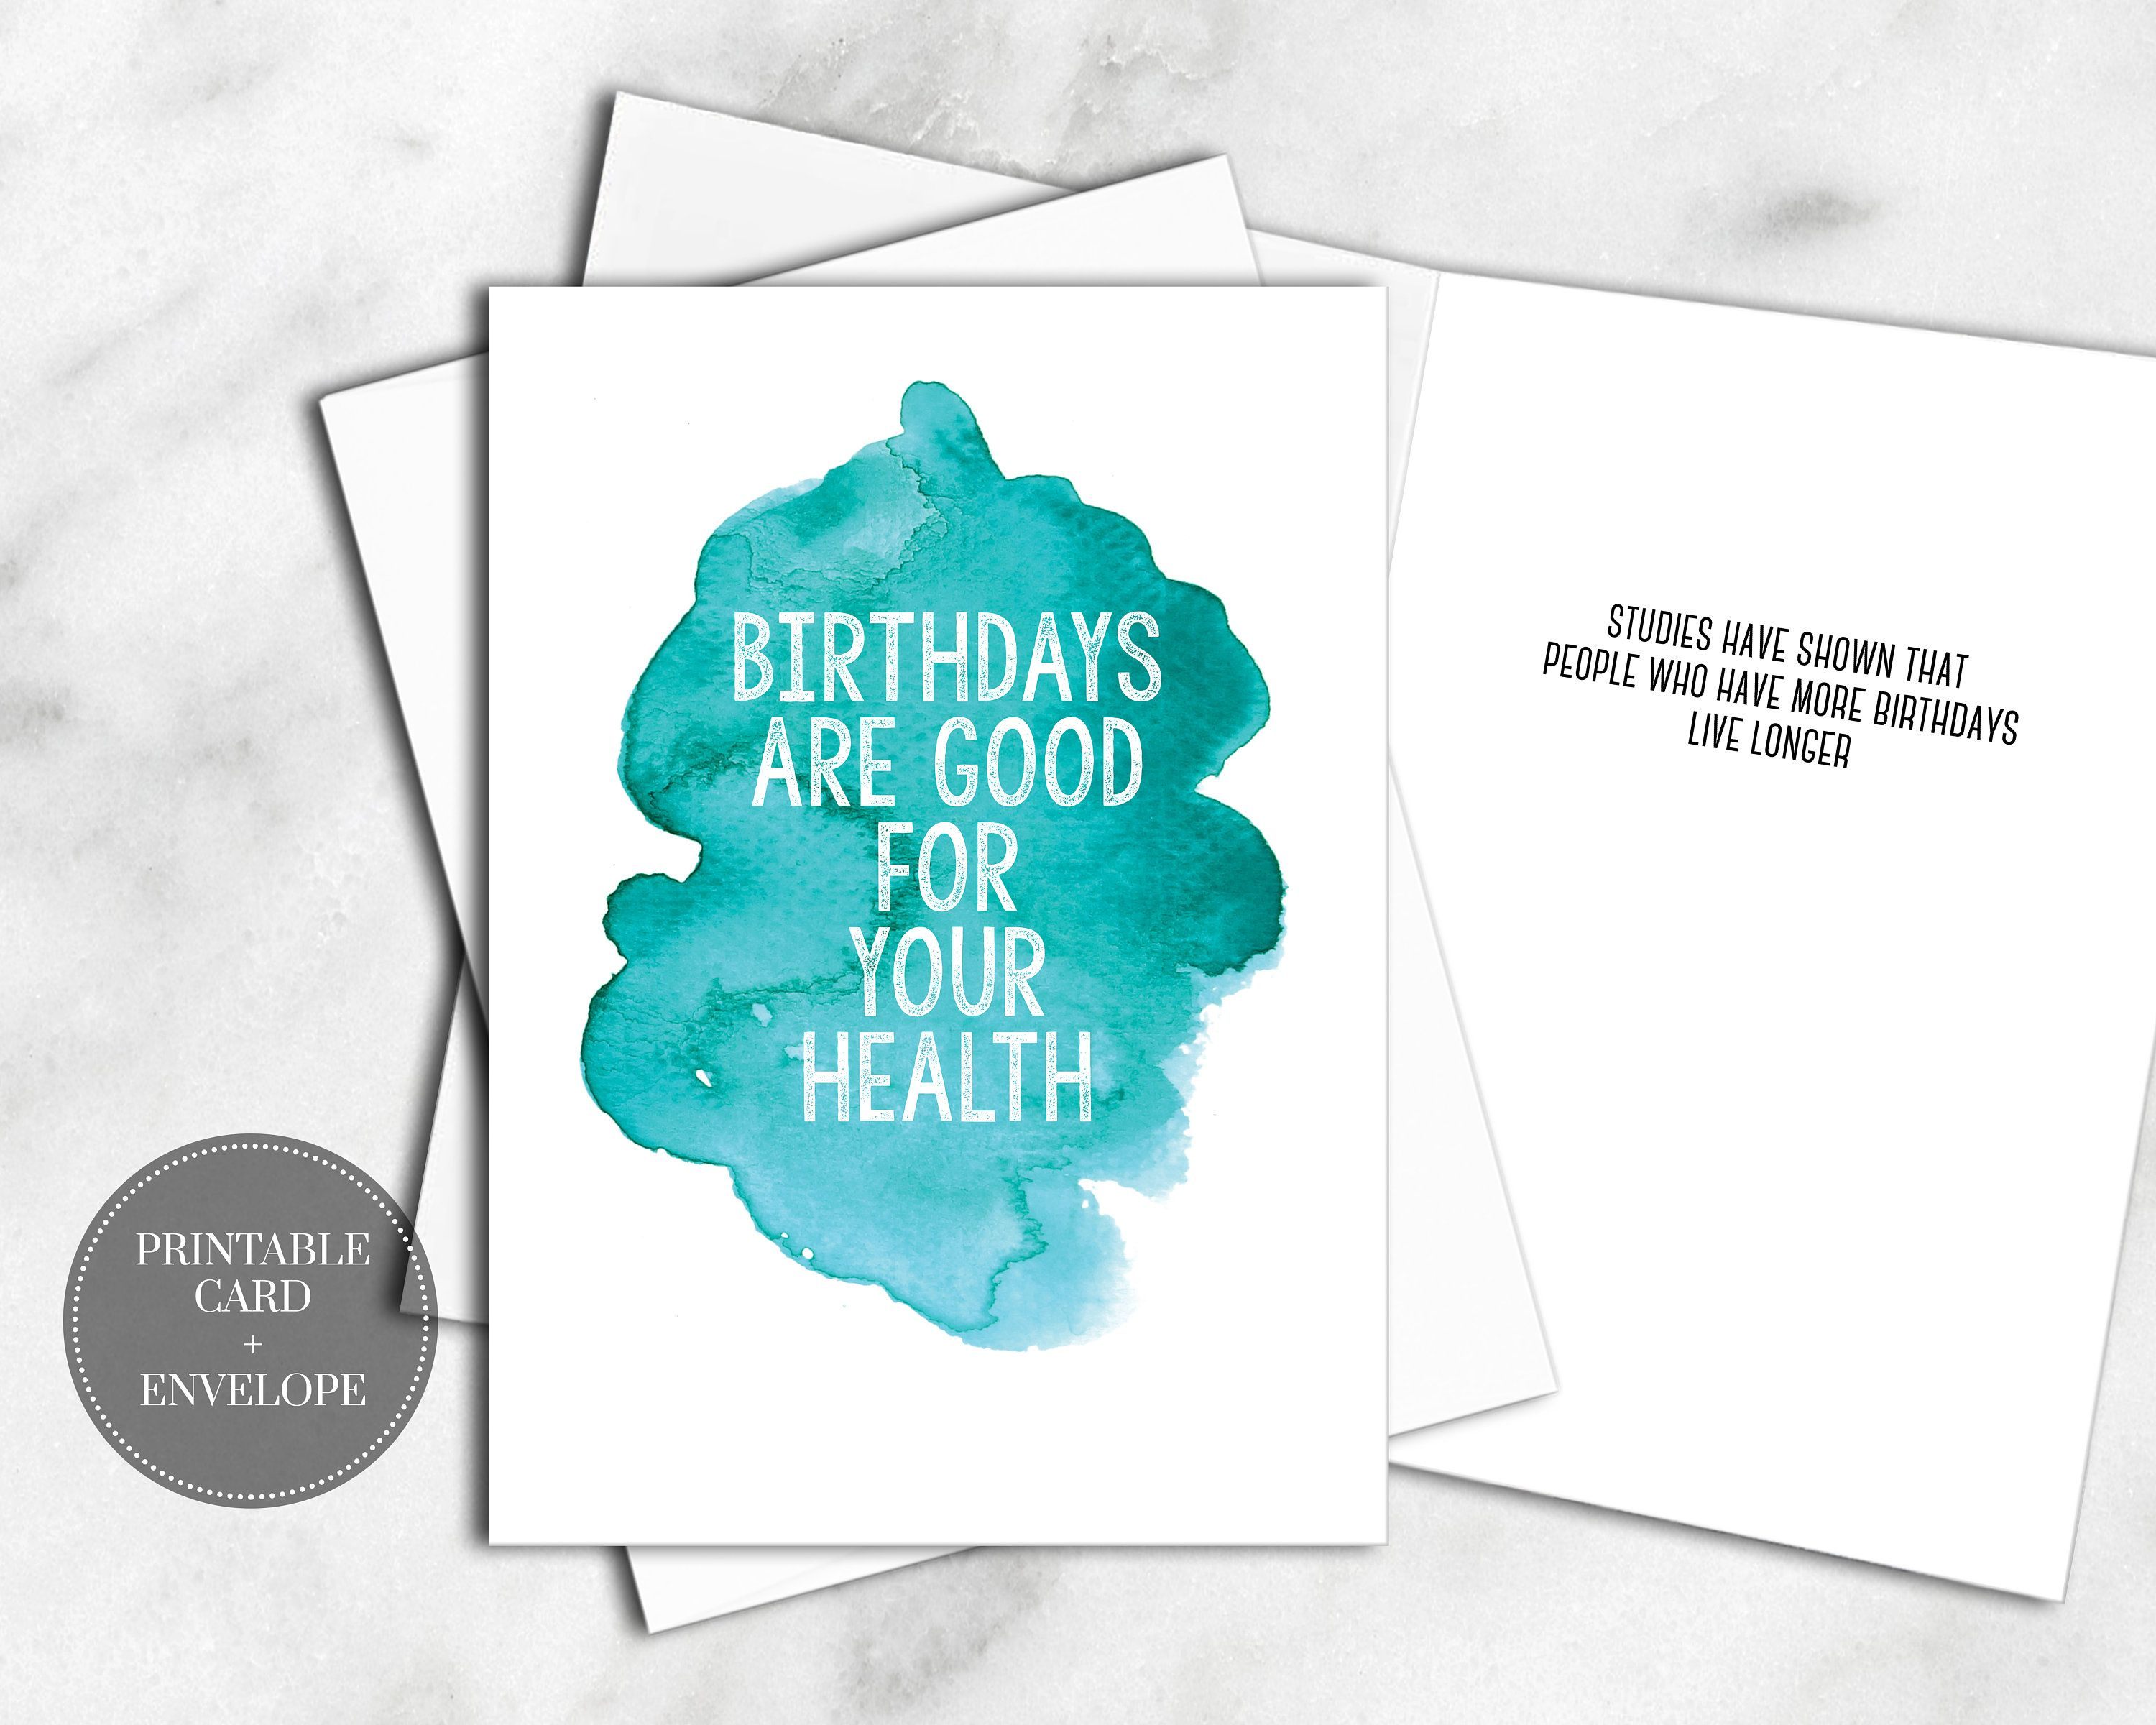 PRINTABLE Birthday Greeting Card INSTANT DOWNLOAD Digital Envelope Blue Watercolor Cute Funny Saying For Him Her Anyone Best Friend By RazorsEdgePaperie On